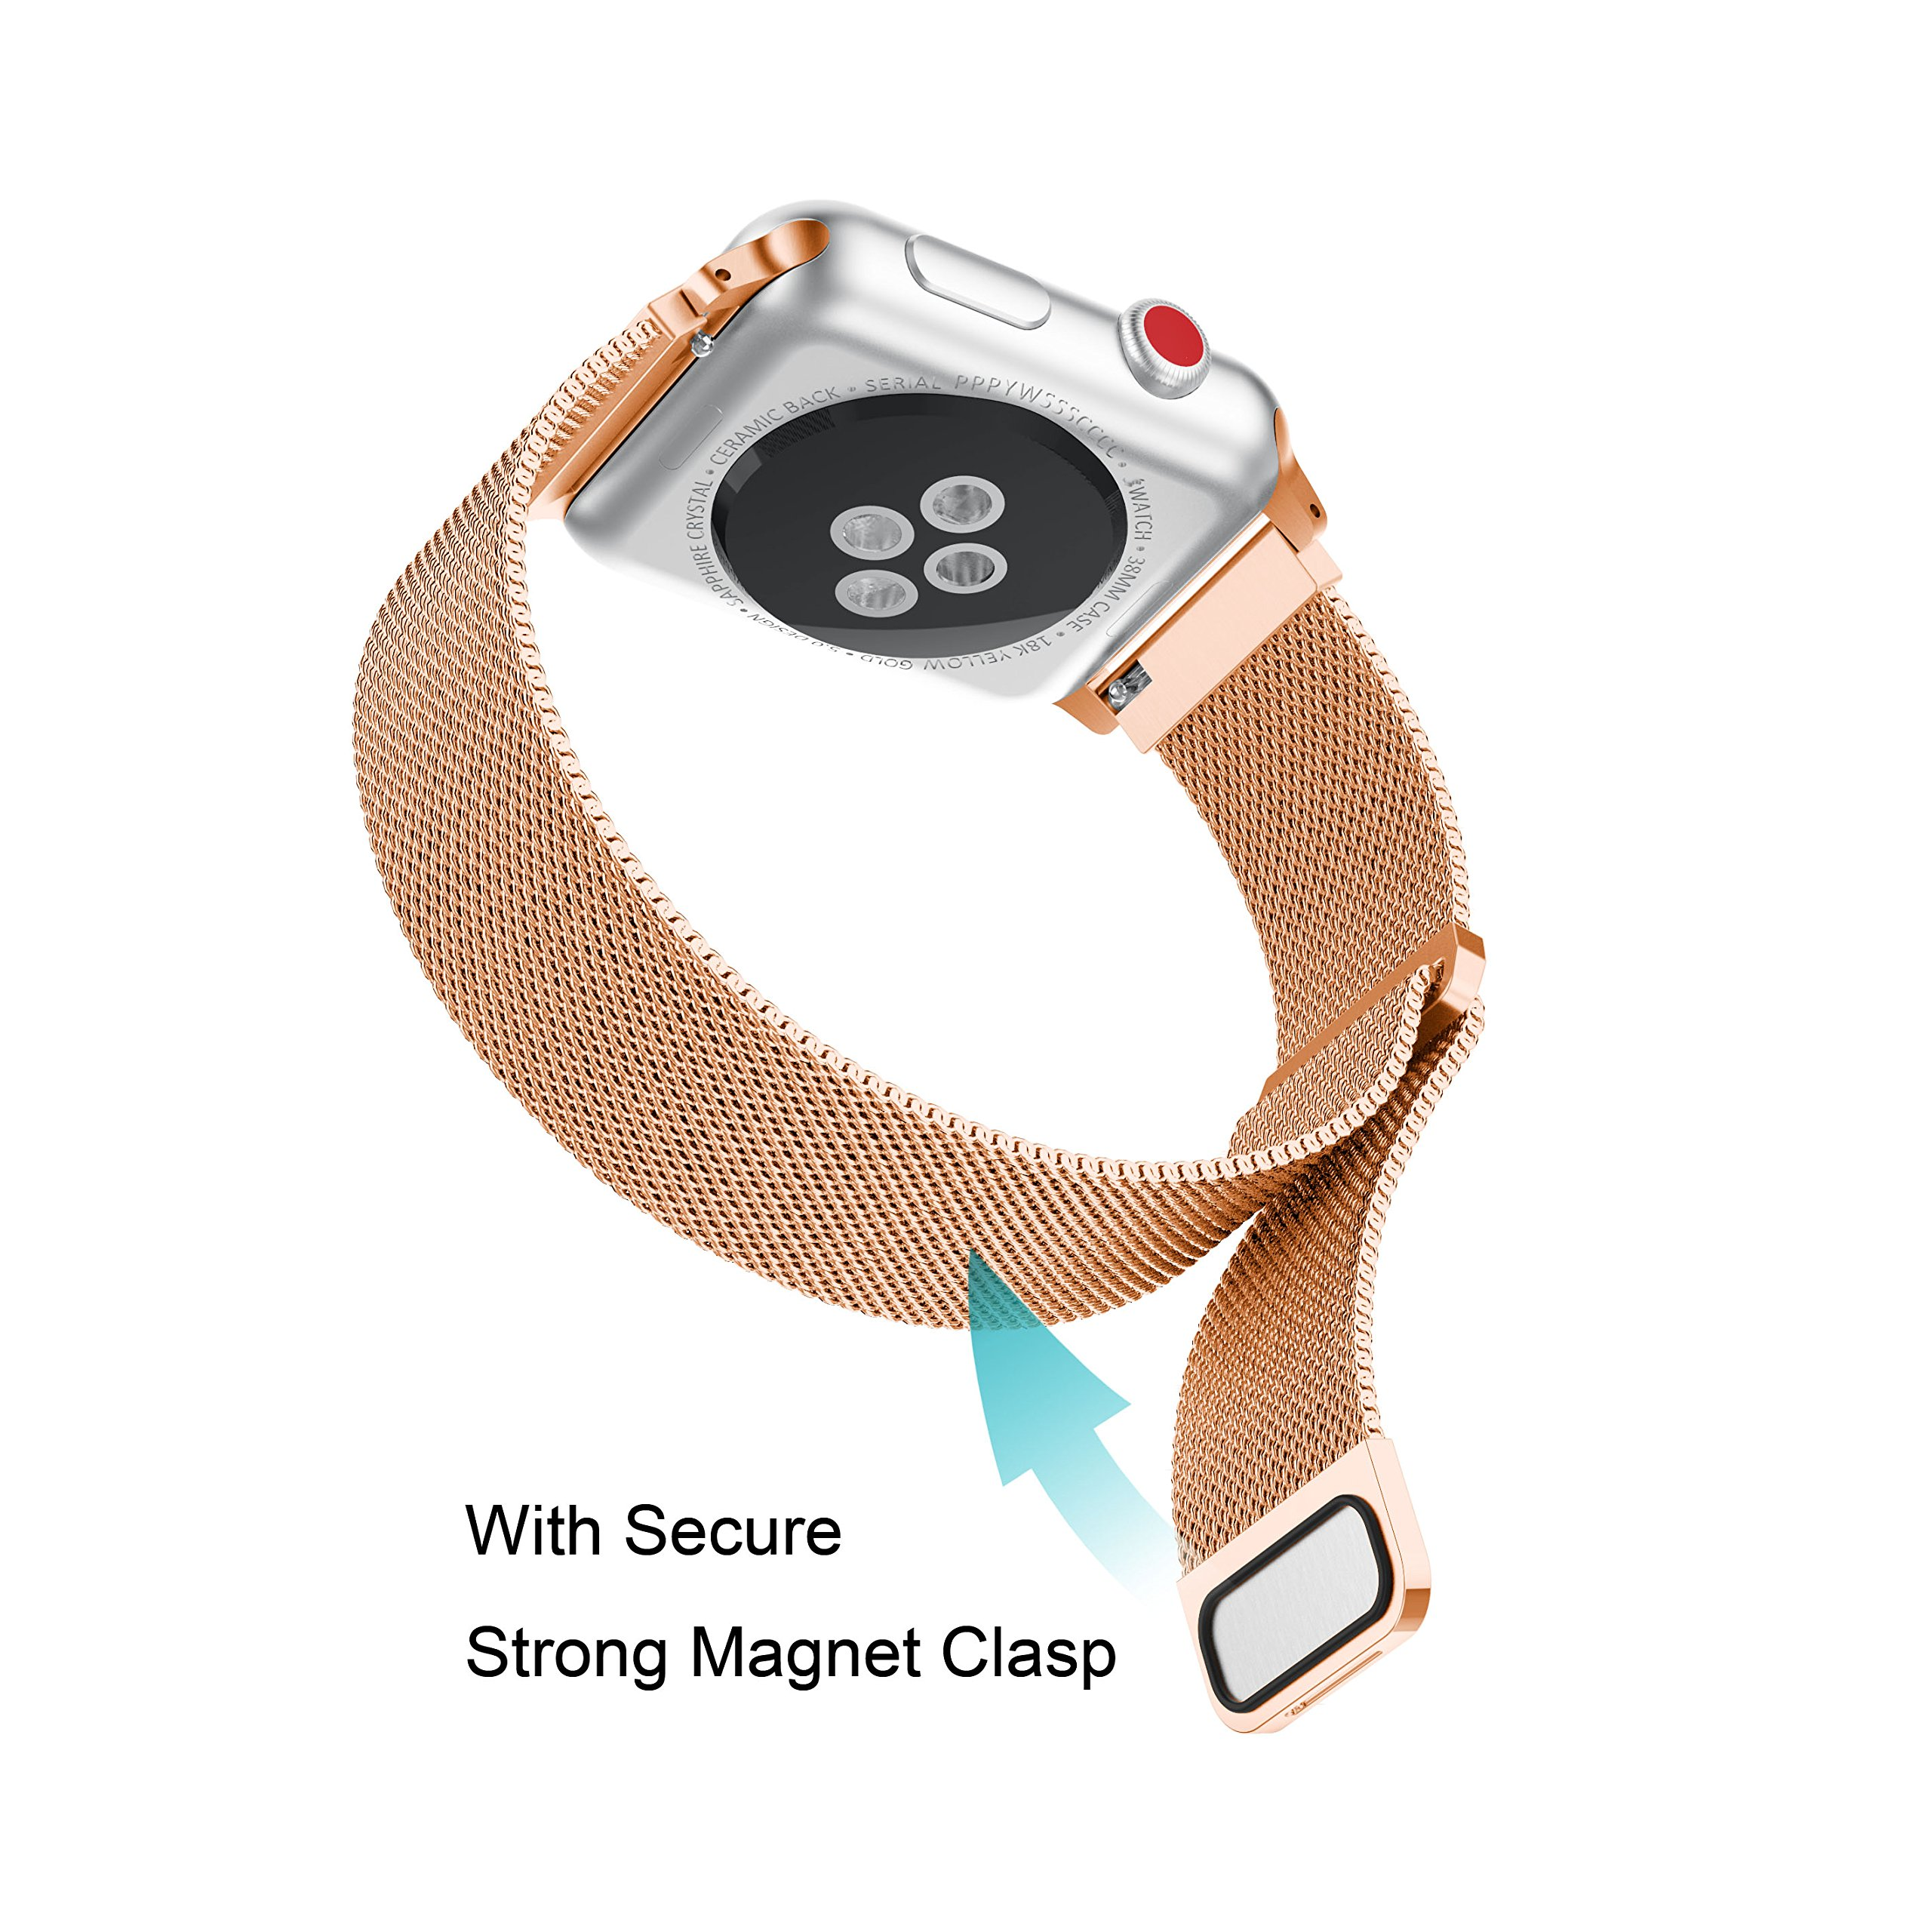 Apple Watch Band 42mm, Supore Fully Magnetic Closure Clasp Mesh Loop Milanese Stainless Steel Replacement Bracelet Strap for iWatch Band Series 3/ 2/ 1, Rose Gold